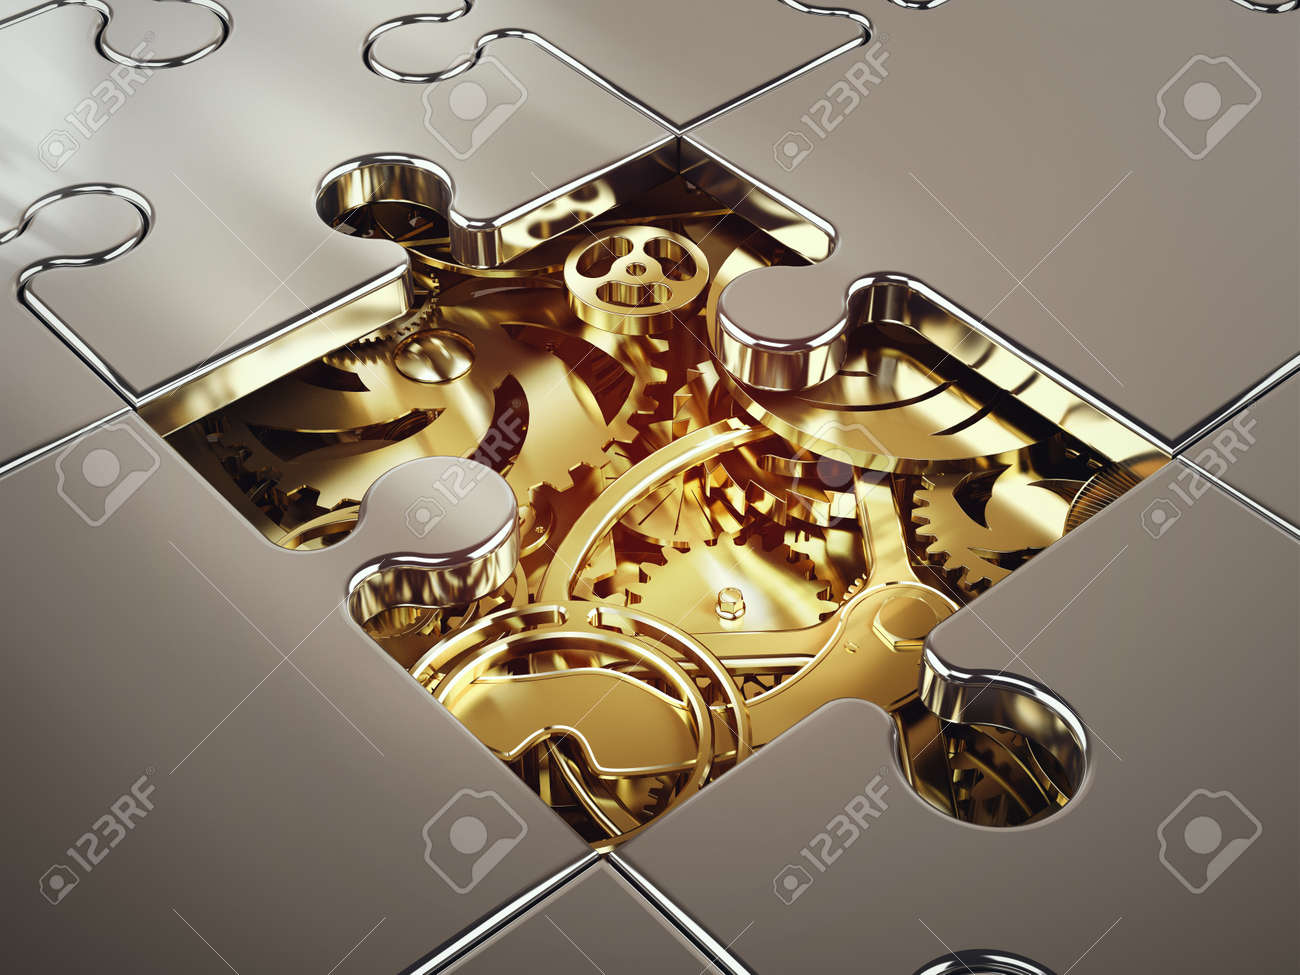 3D Rendering of System of golden gear covered by a puzzle. concept of cooperation between systems Standard-Bild - 63888840